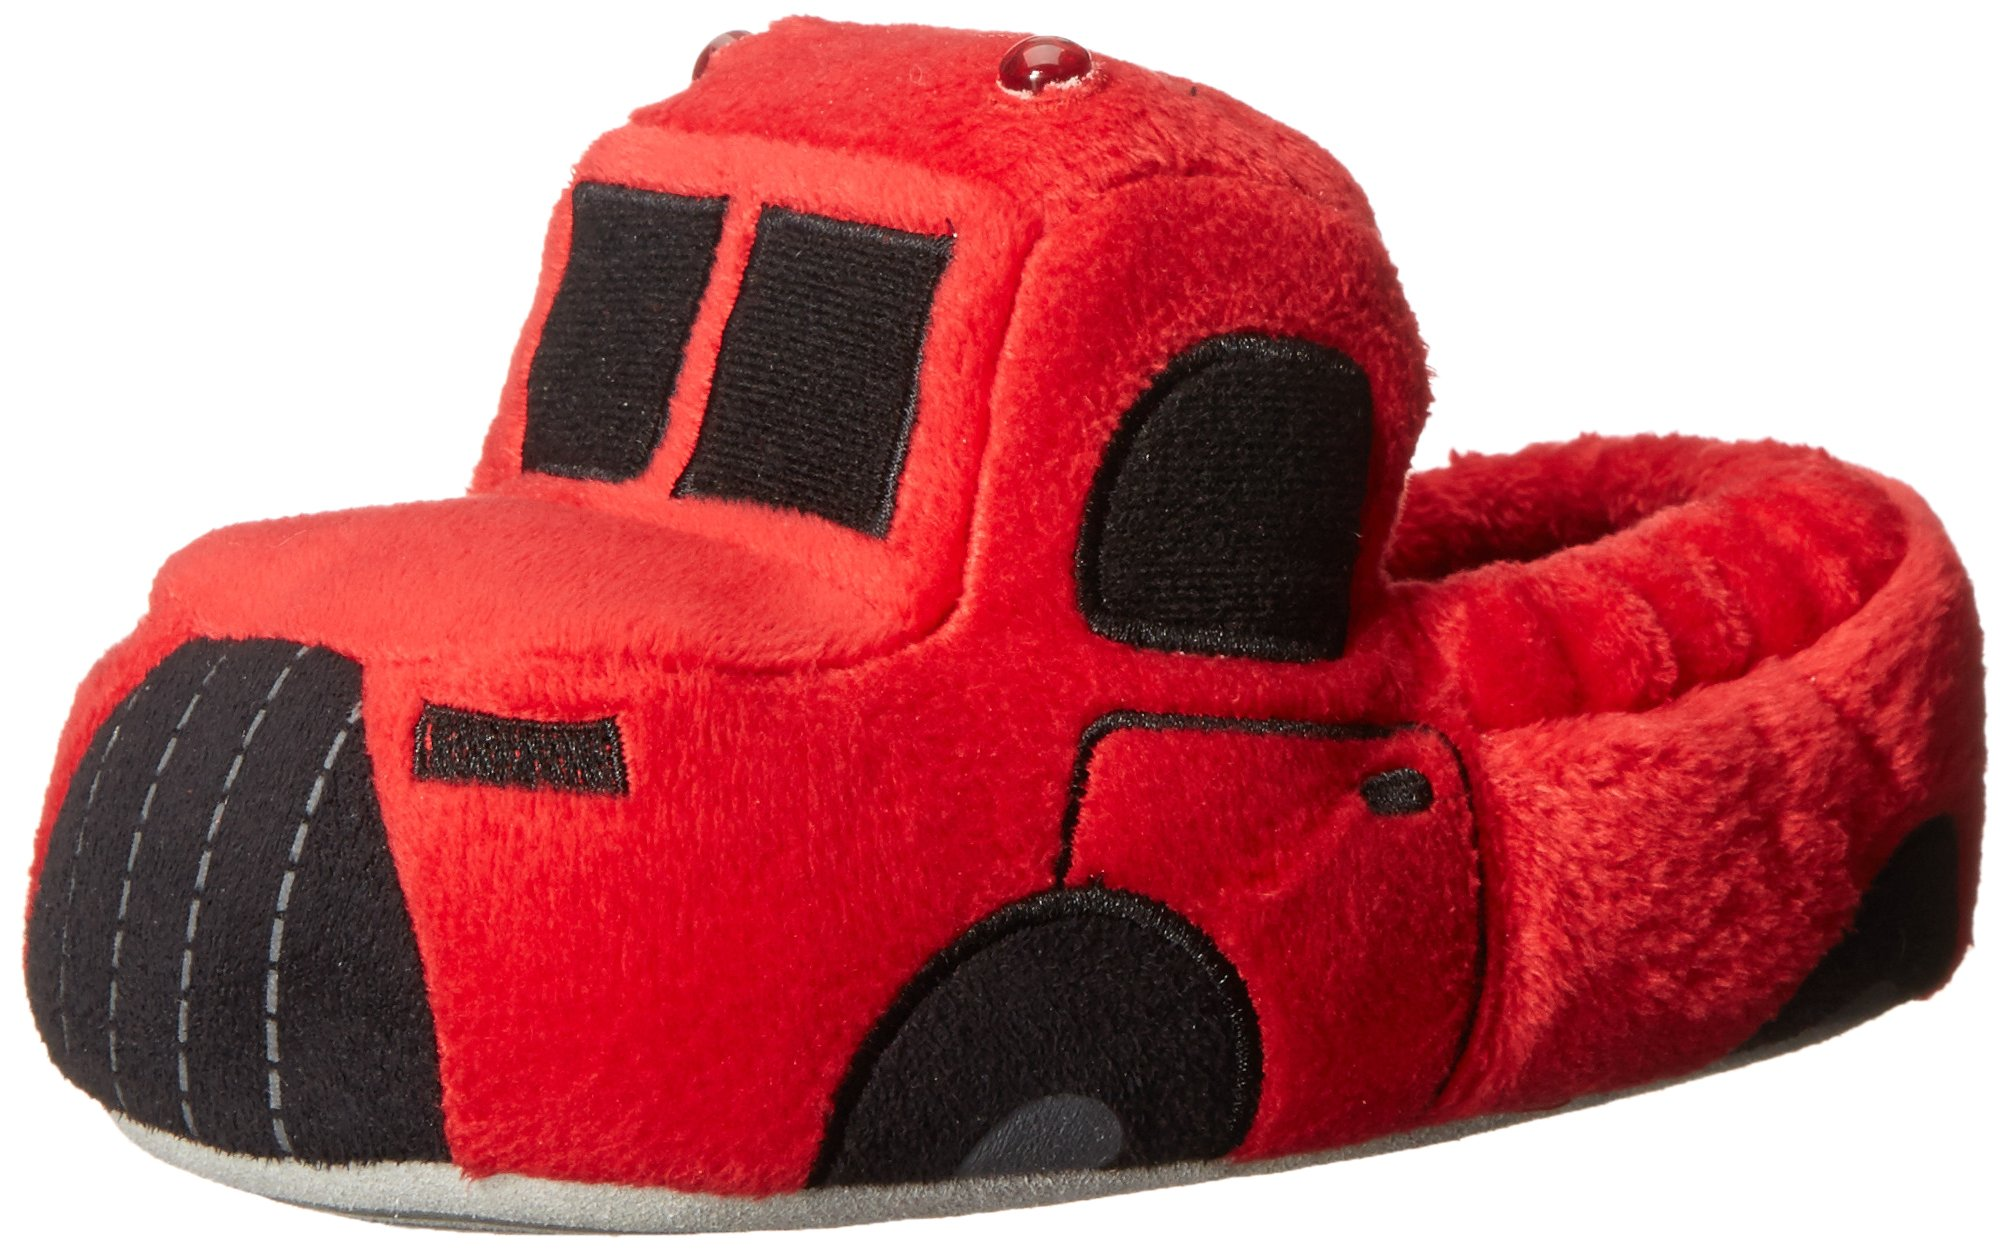 Image of Light Up Fire Truck Slippers for Boys and Toddlers